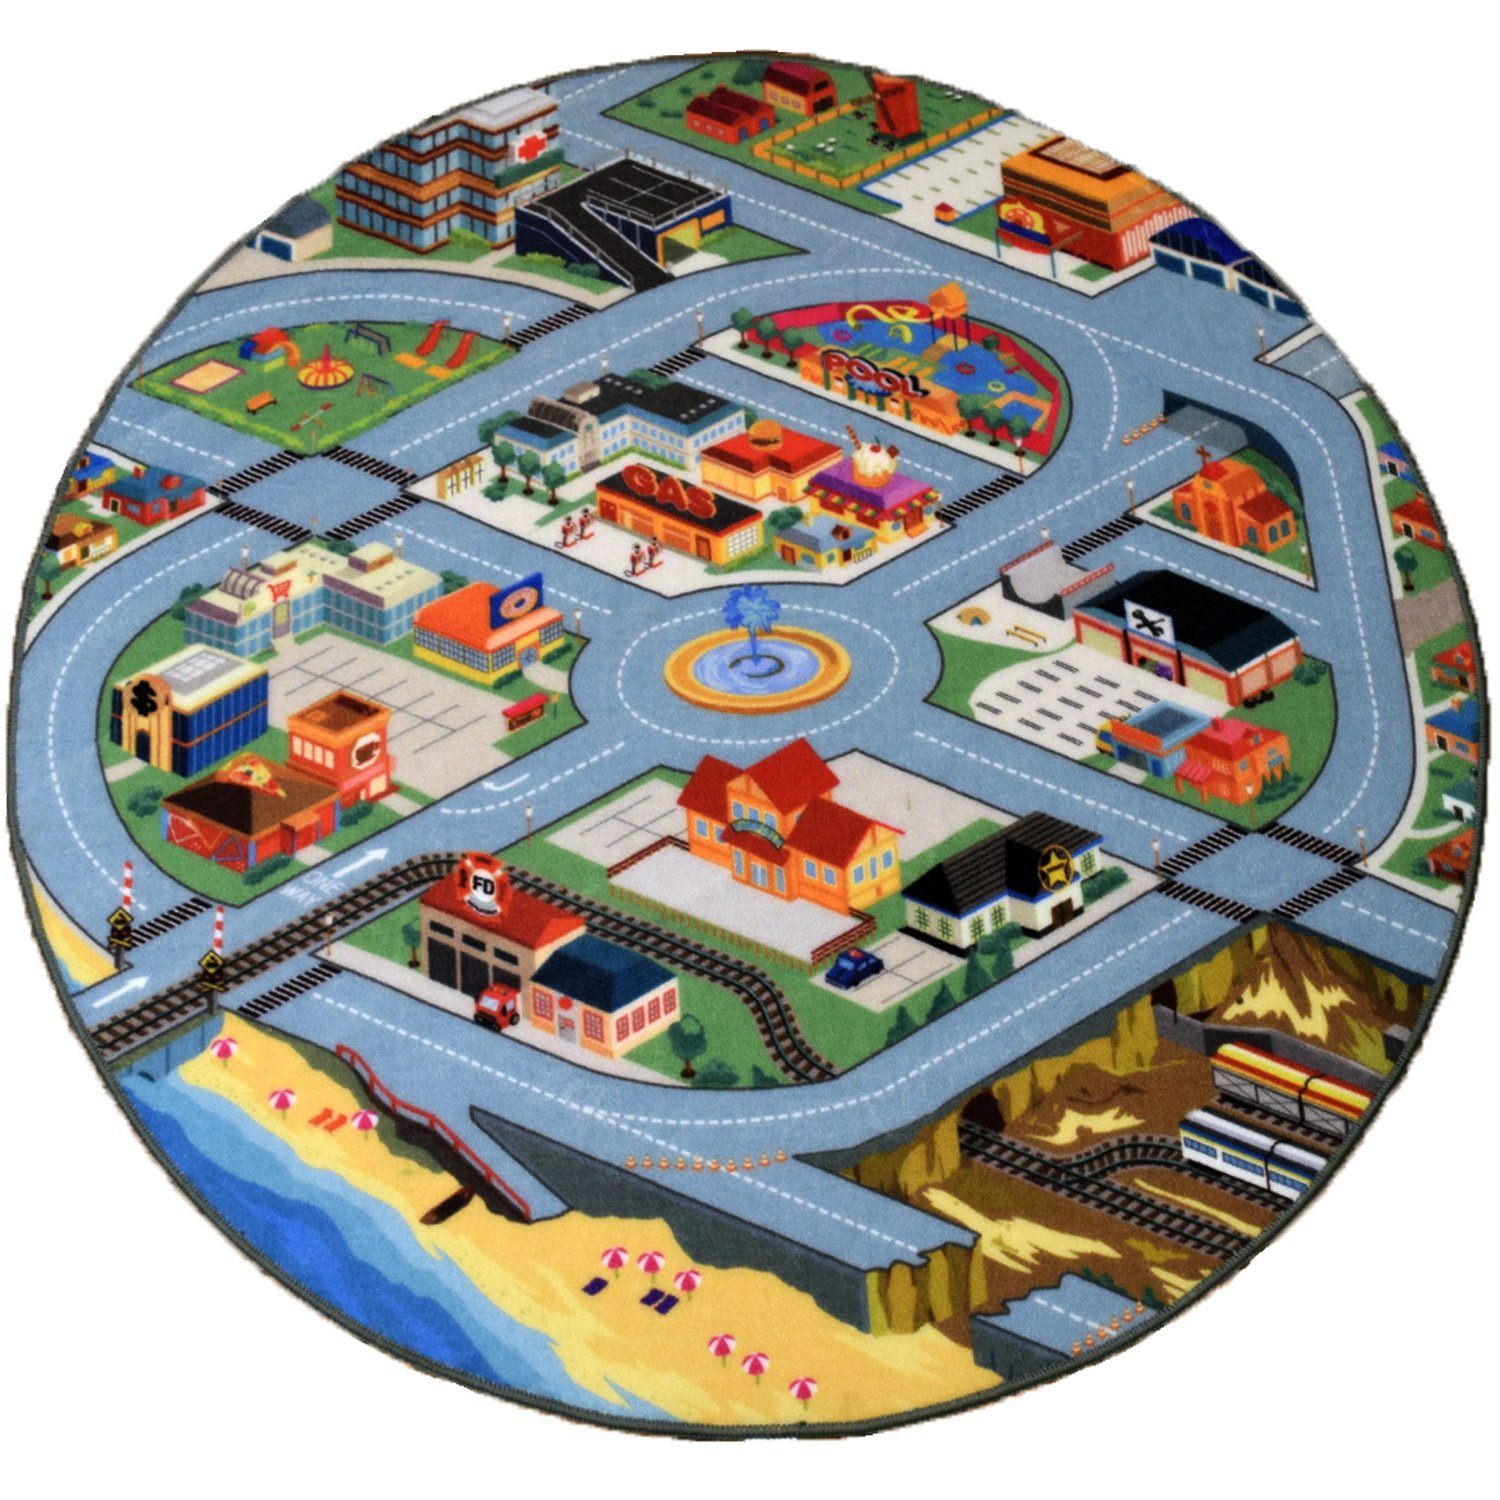 Creative QT Kid's Play Rug - Funfield City 51 inch Road Non-Slip Carpet for Cars and Toys - Round Activity Educational Colorful Fun Traffic Playmat for Children, Boys, and Girls